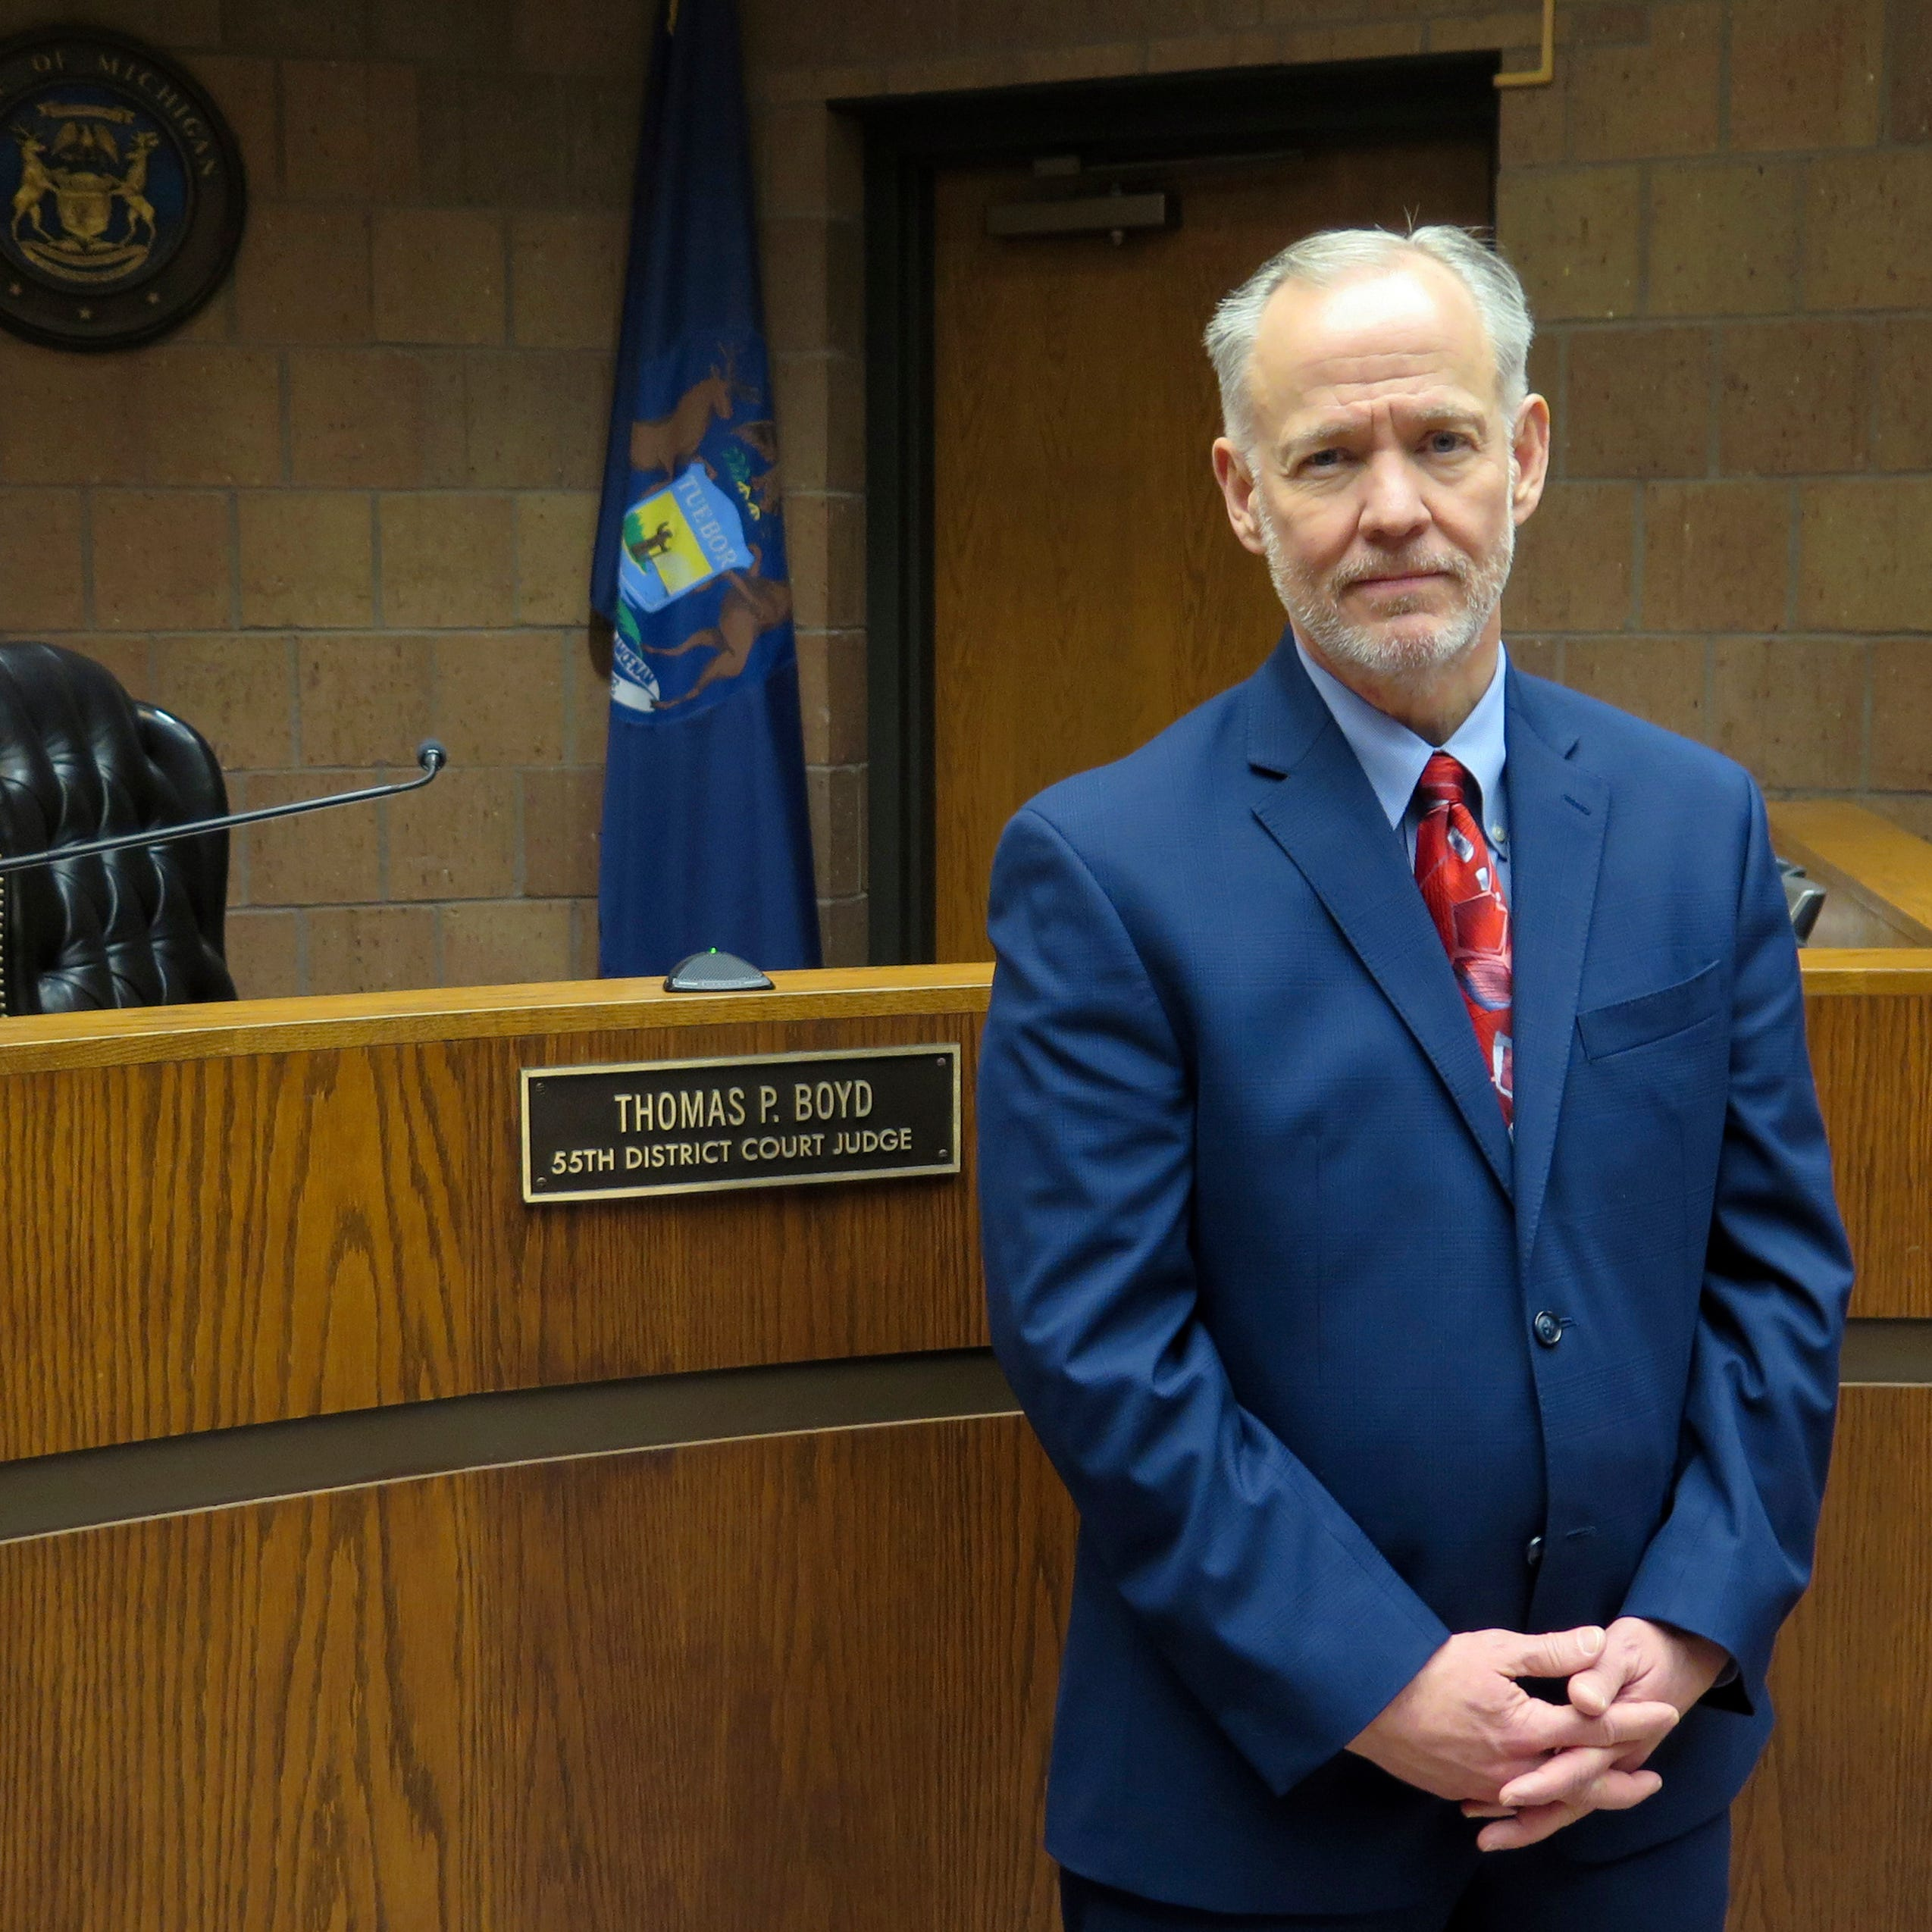 Case could upset a key source of cash for Michigan courts